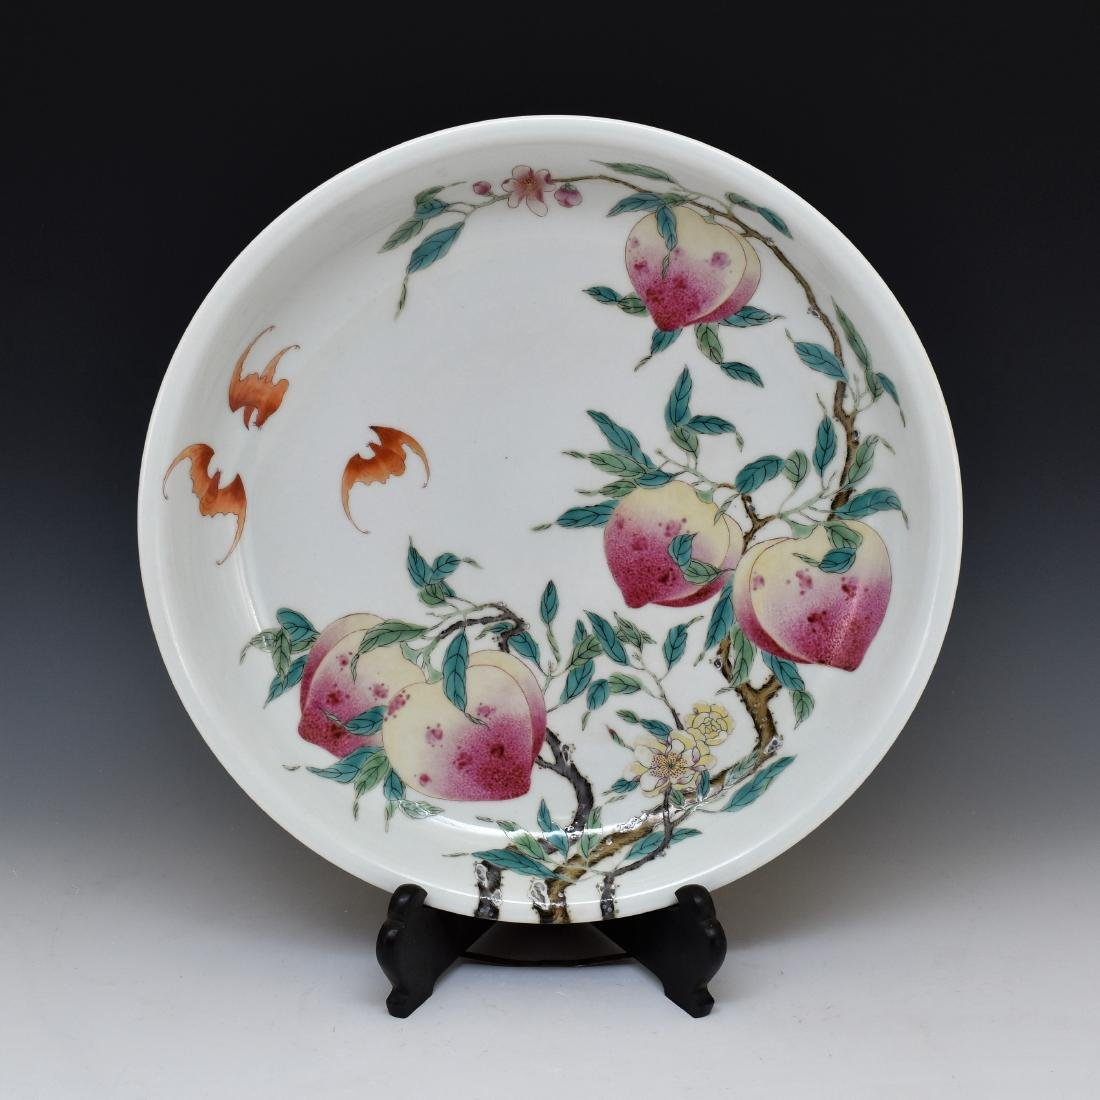 FAMILLE ROSE BATS & PEACH PORCELAIN CHARGER